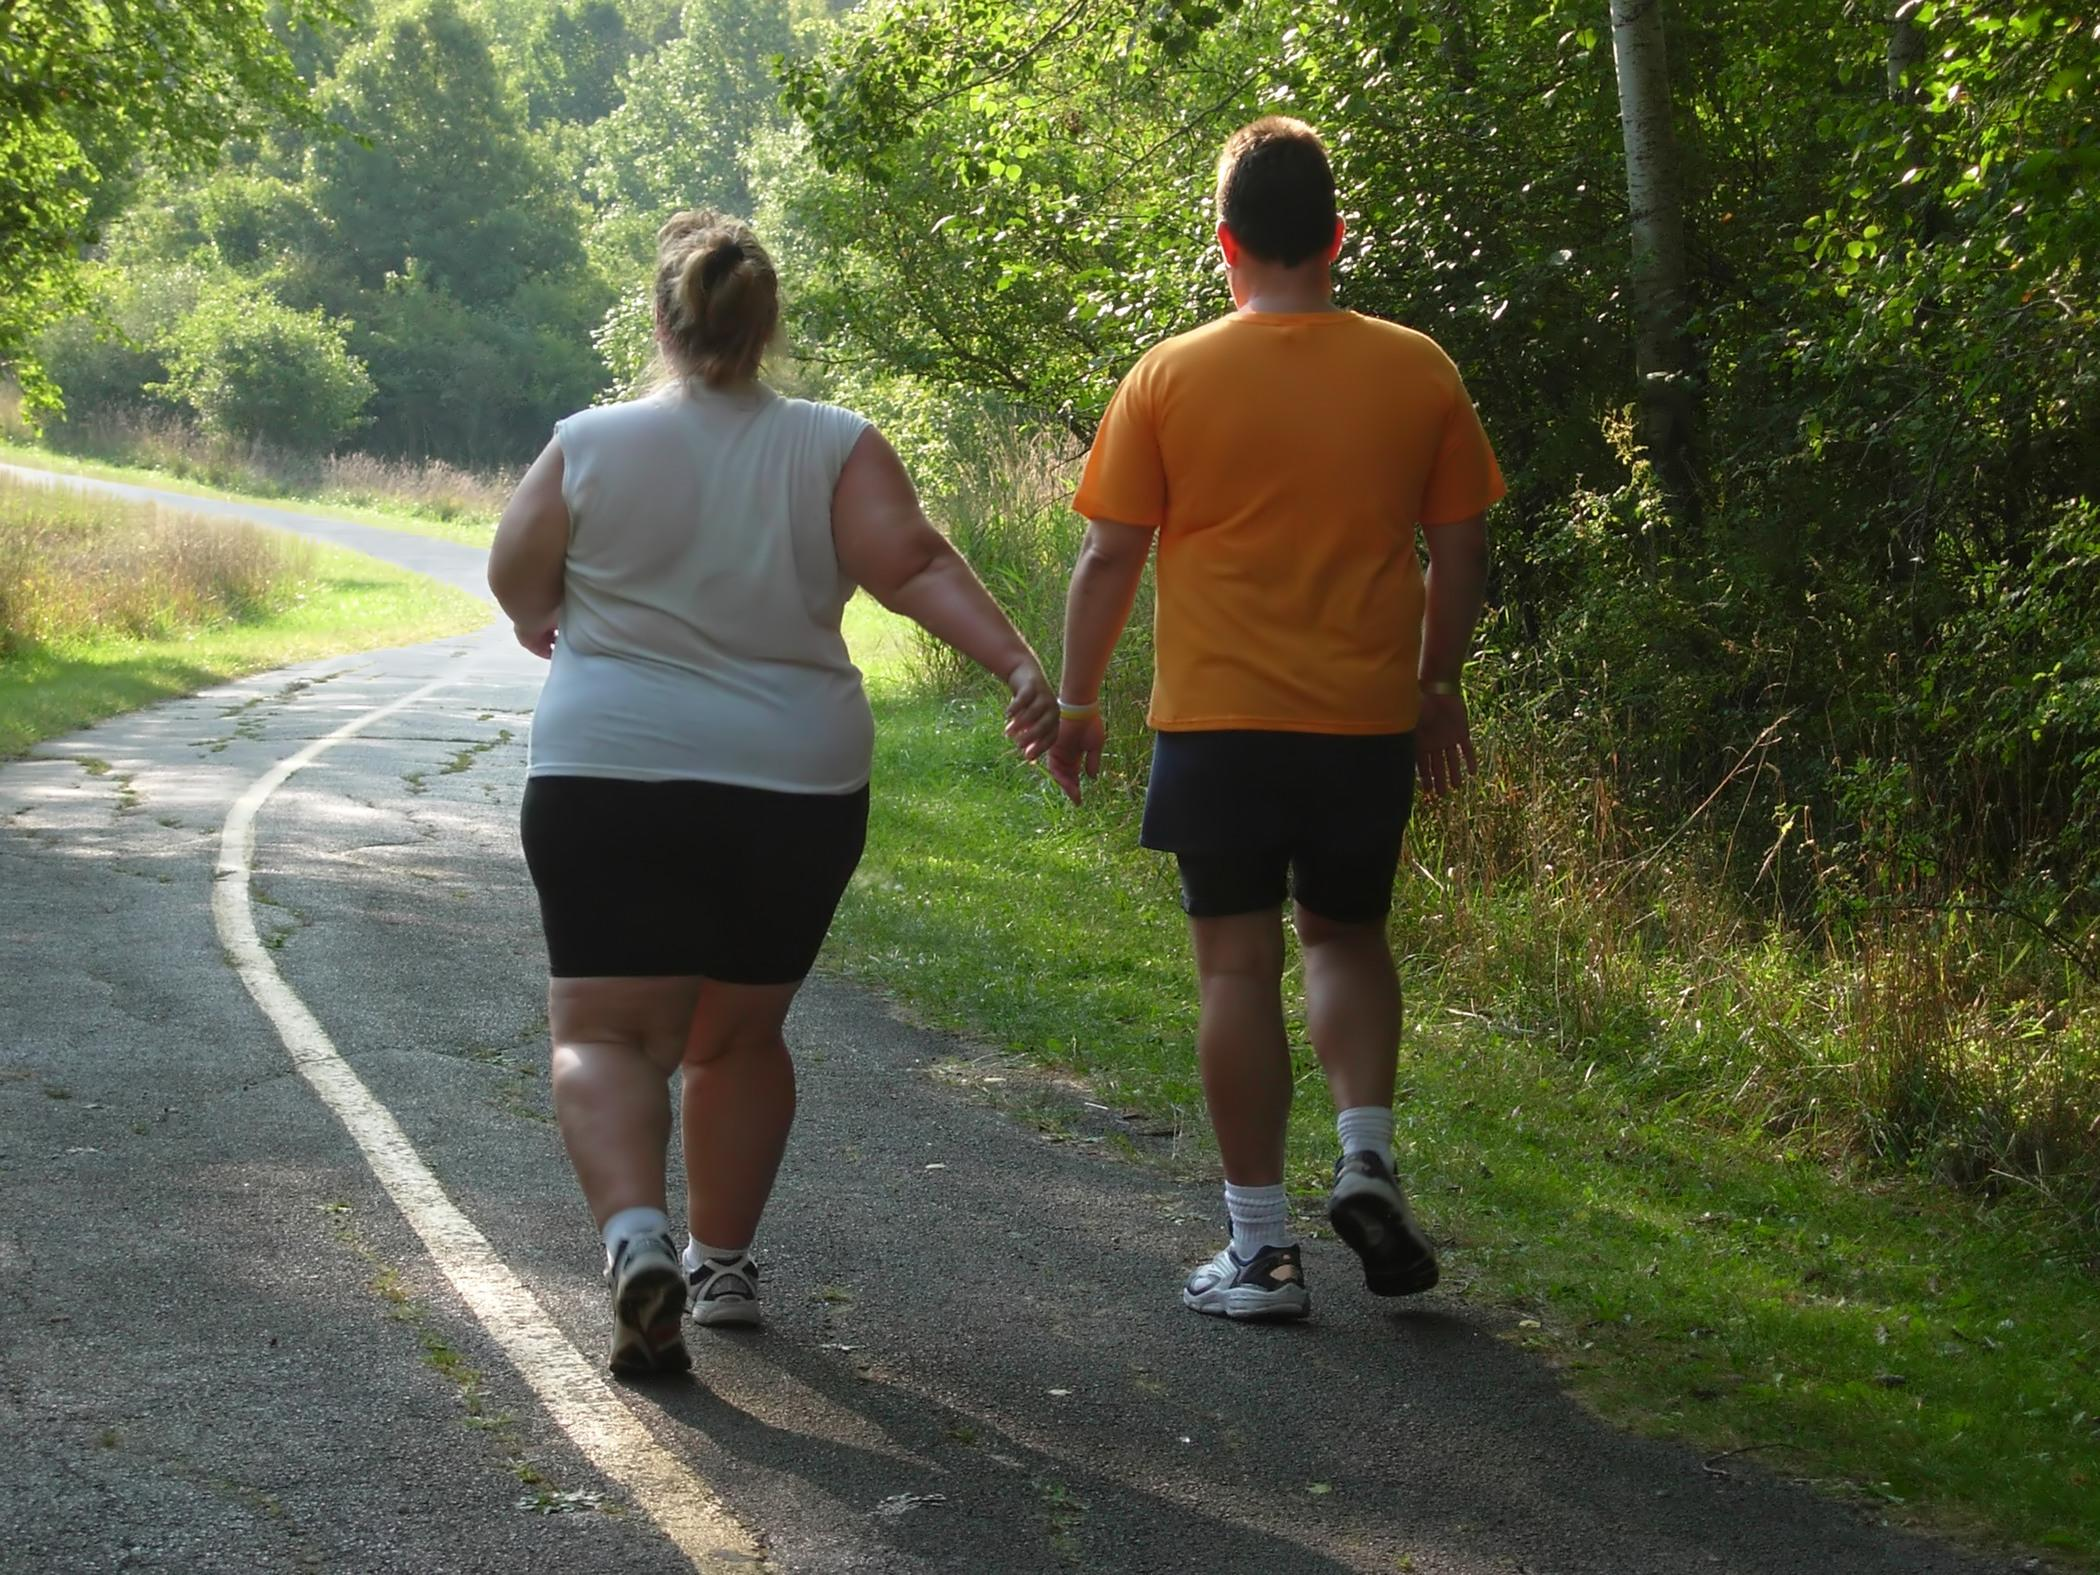 Study yields pregnancy guidance for the obese